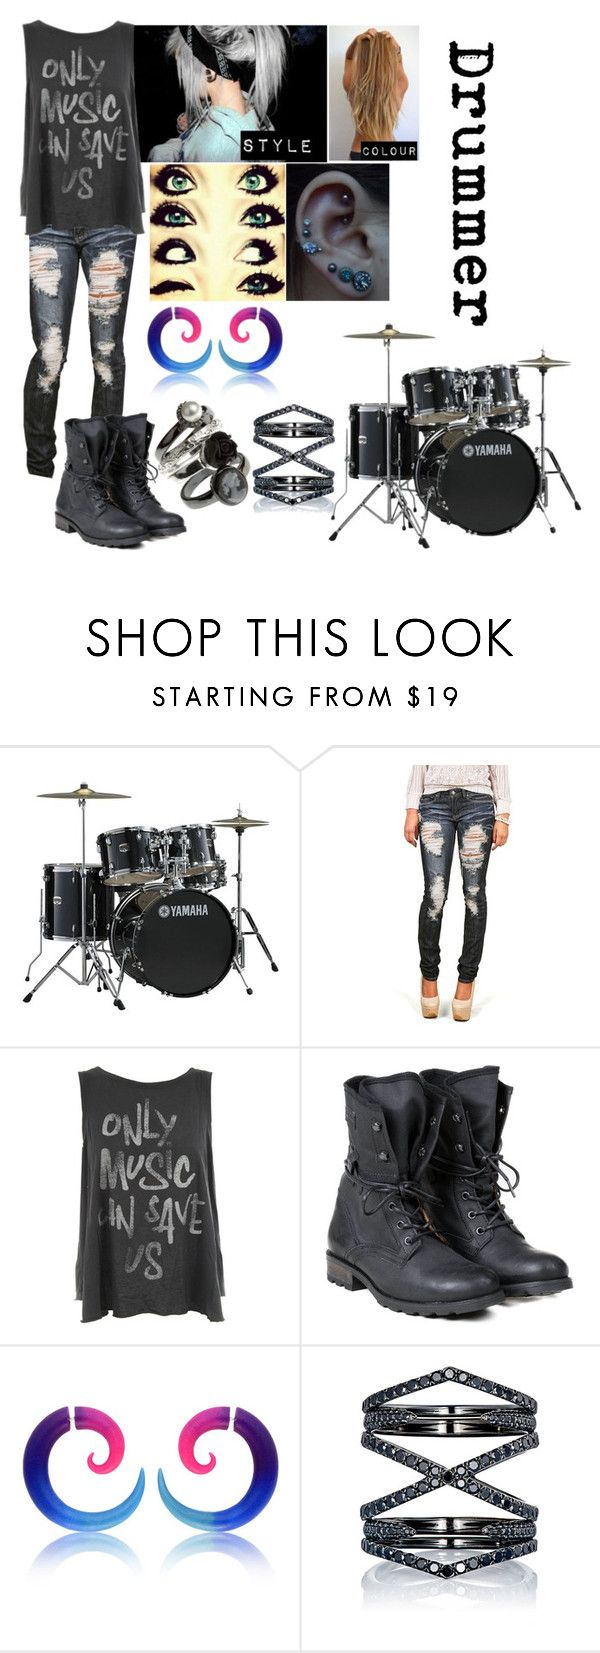 Food Punk Dylan S Candy Bar A Grown Up S Candy Store: 1000+ Ideas About Punk Rock Style On Pinterest